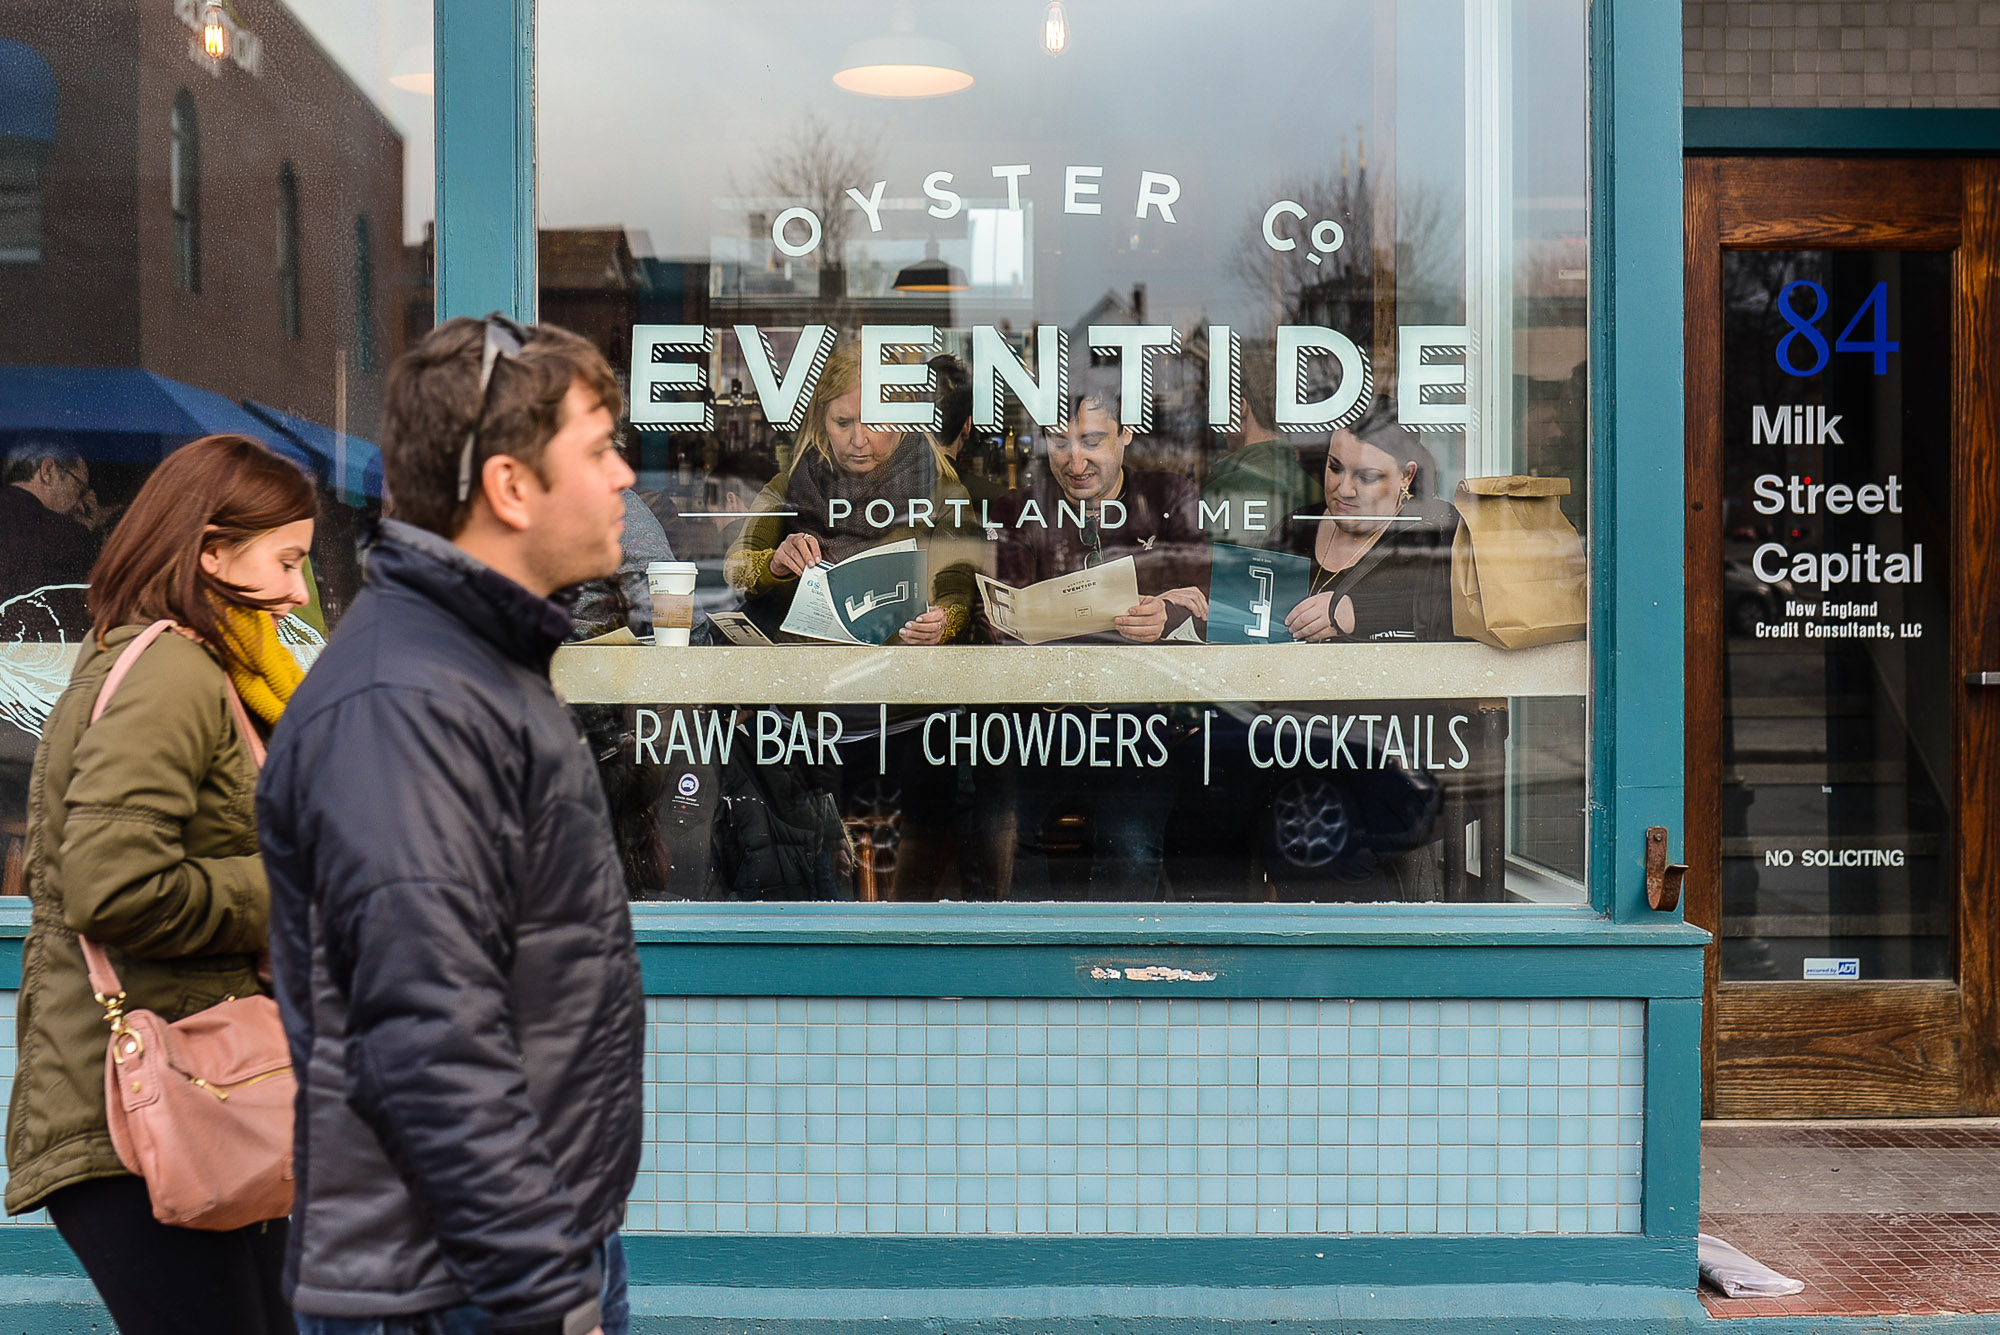 John Golden has been banned from Eventide, Hugo's, and The Honey Paw, all owned by Arlin Smith, Mike Wiley, and Andrew Taylor.